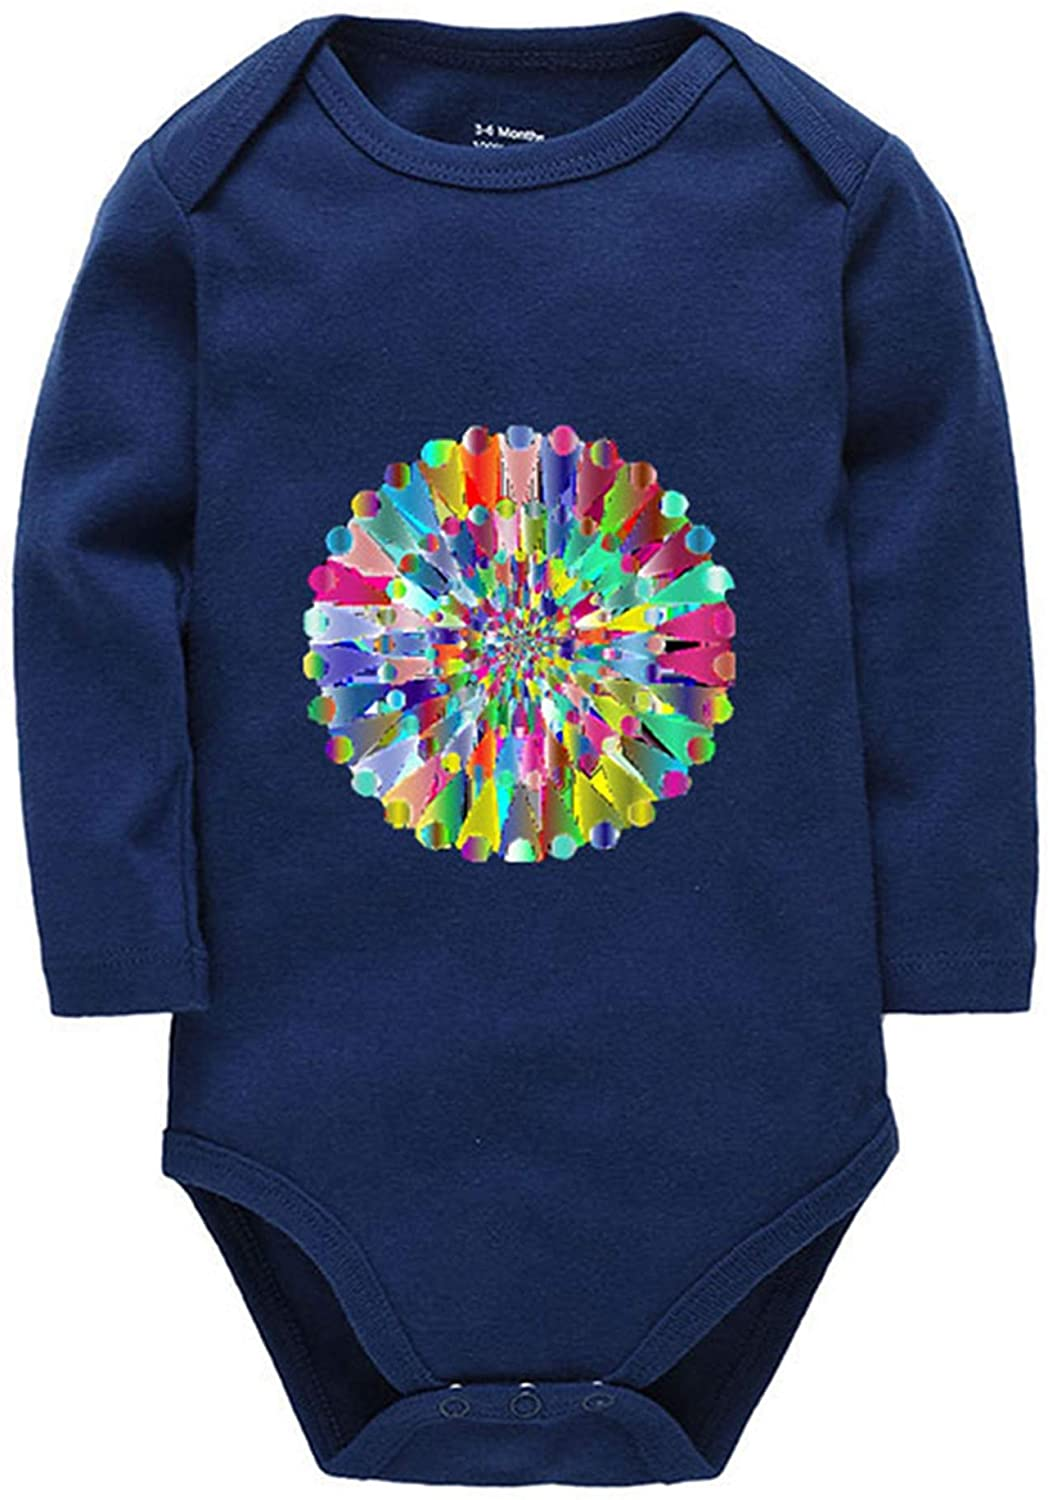 Migsrater Colorful Oil Painting Newborn Onesies Long Sleeve Unisex Baby Cotton Bodysuit Navy